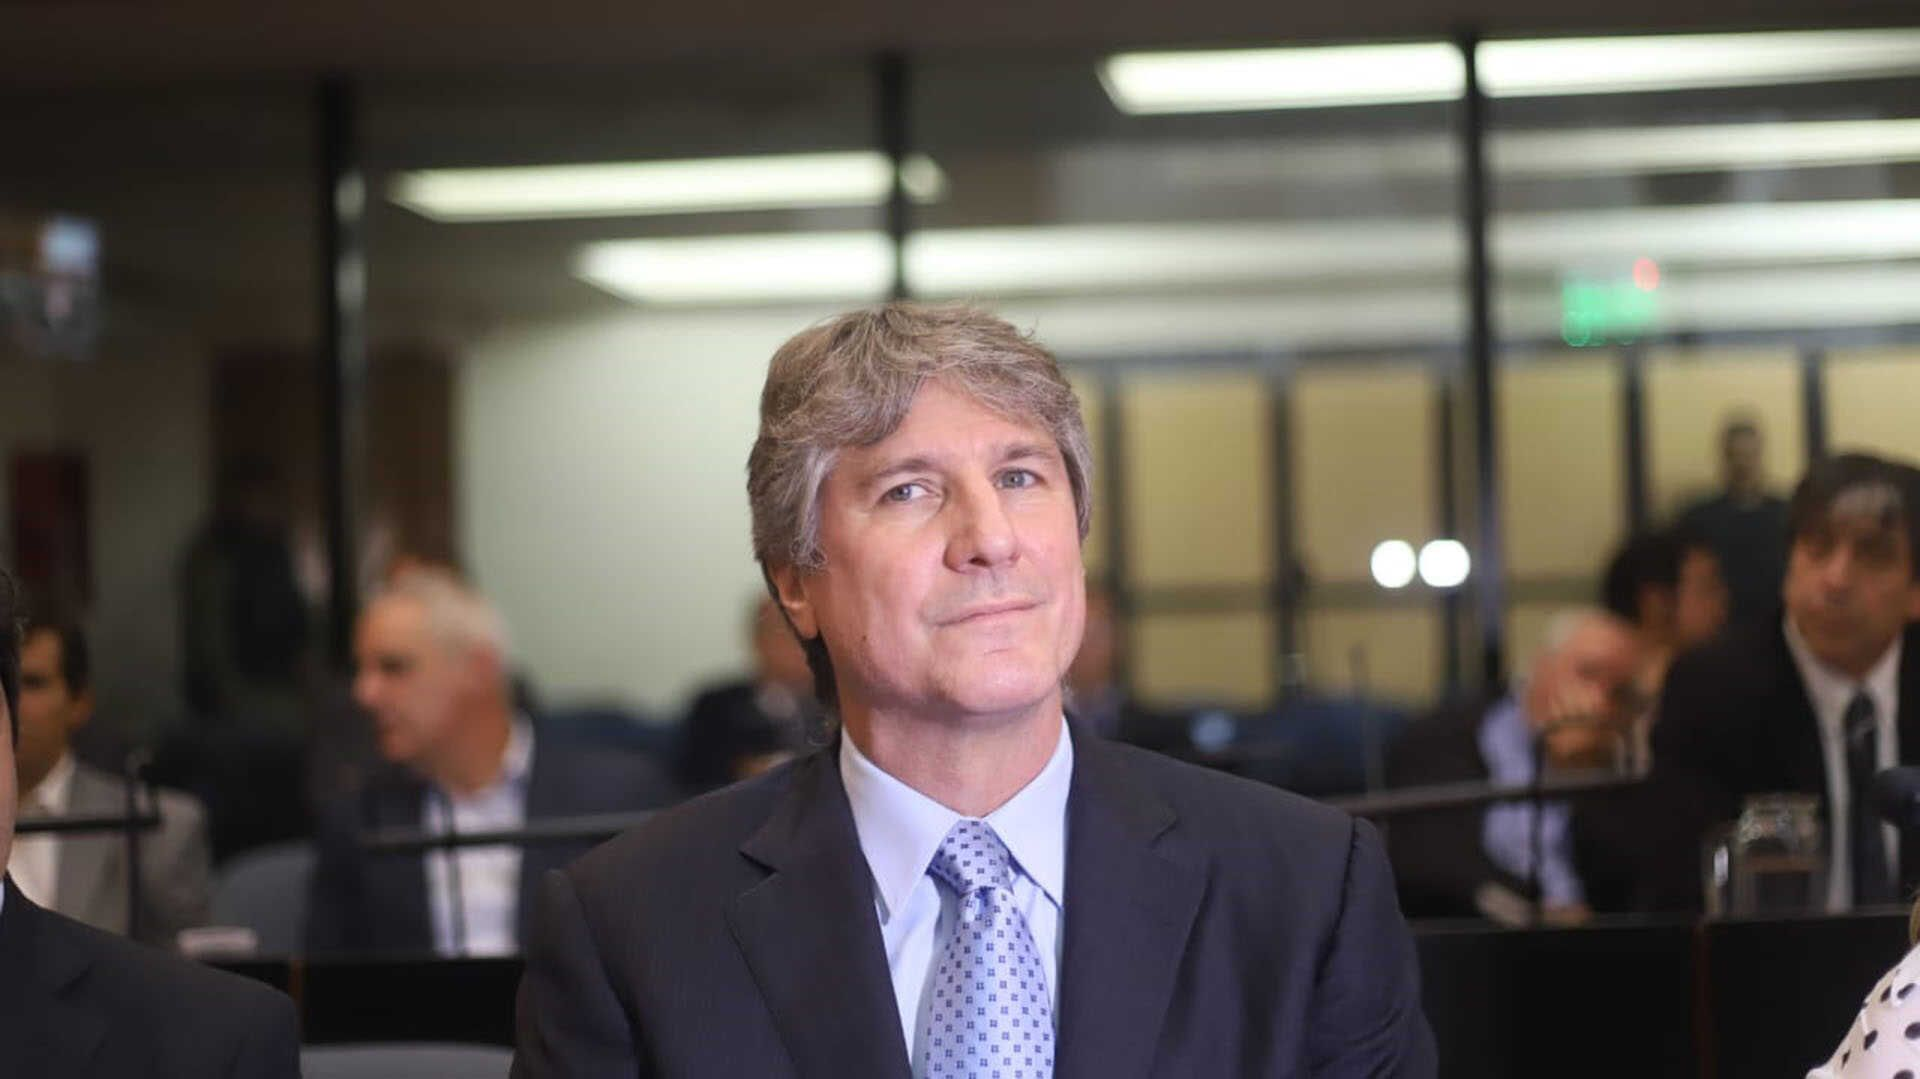 juicio-a-amado-boudou-1920-1_optimized.jpg